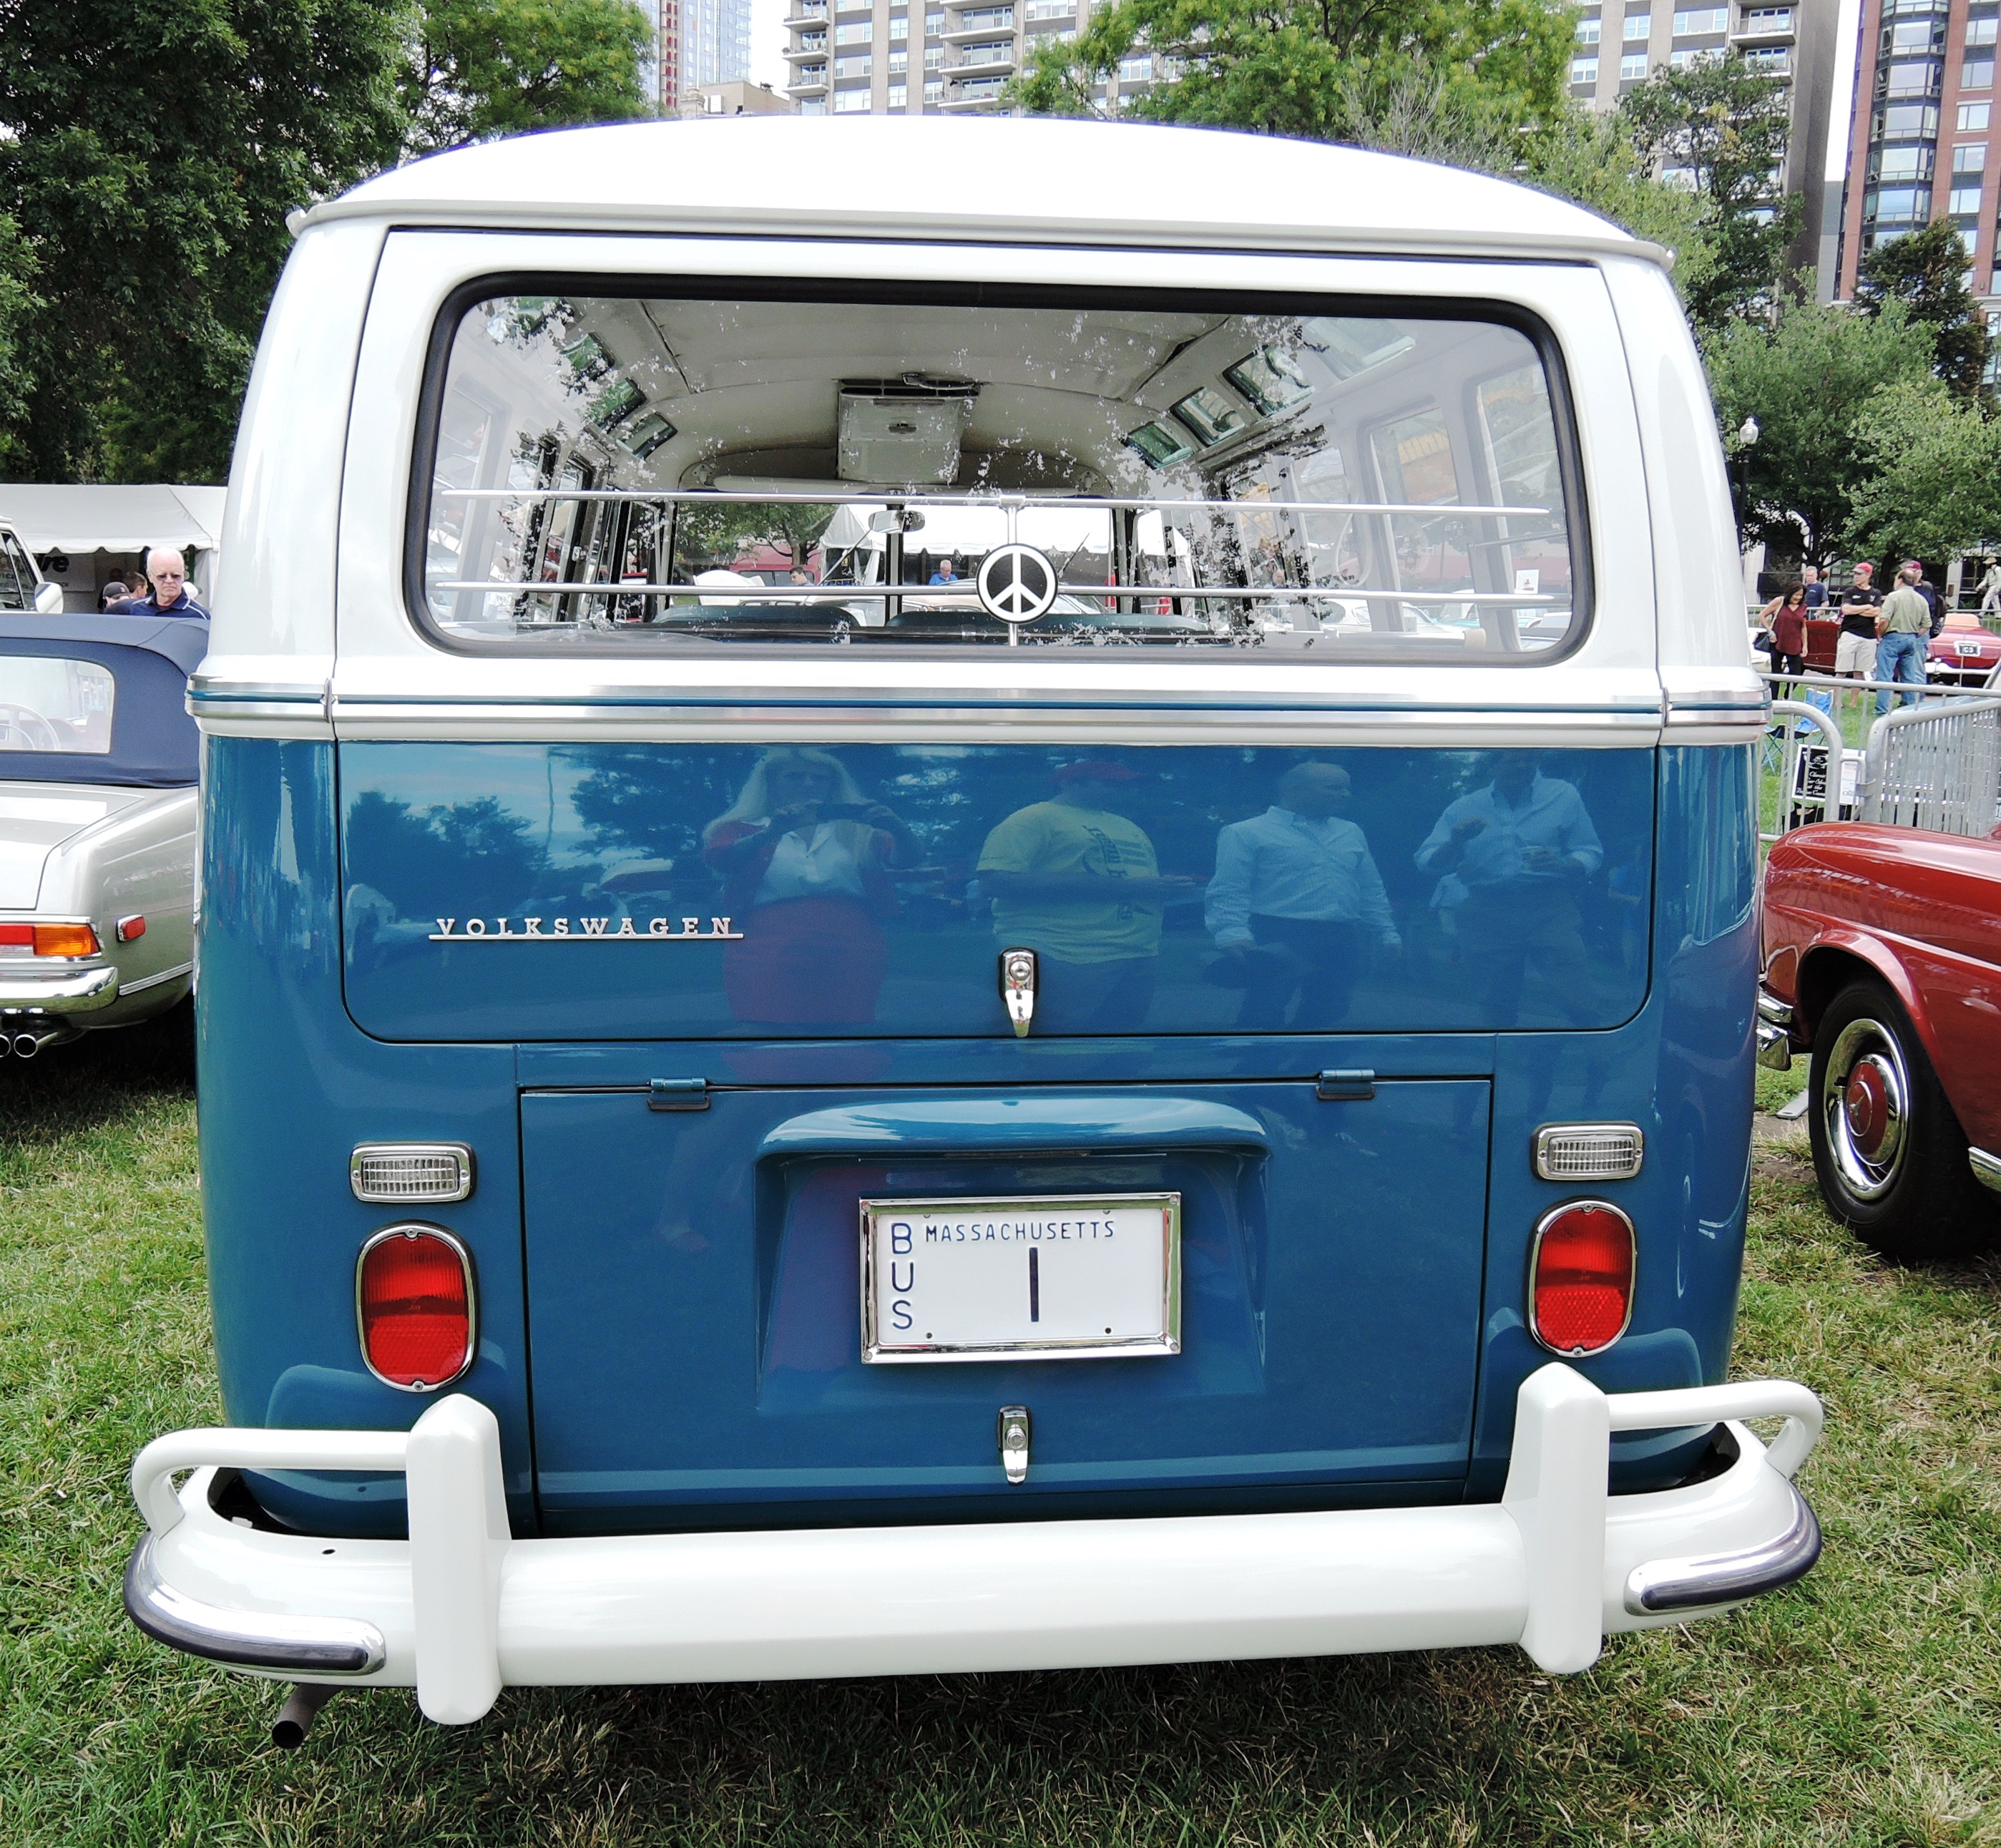 blue 1967 Volkswagen Deluxe Bus - vanity license plates